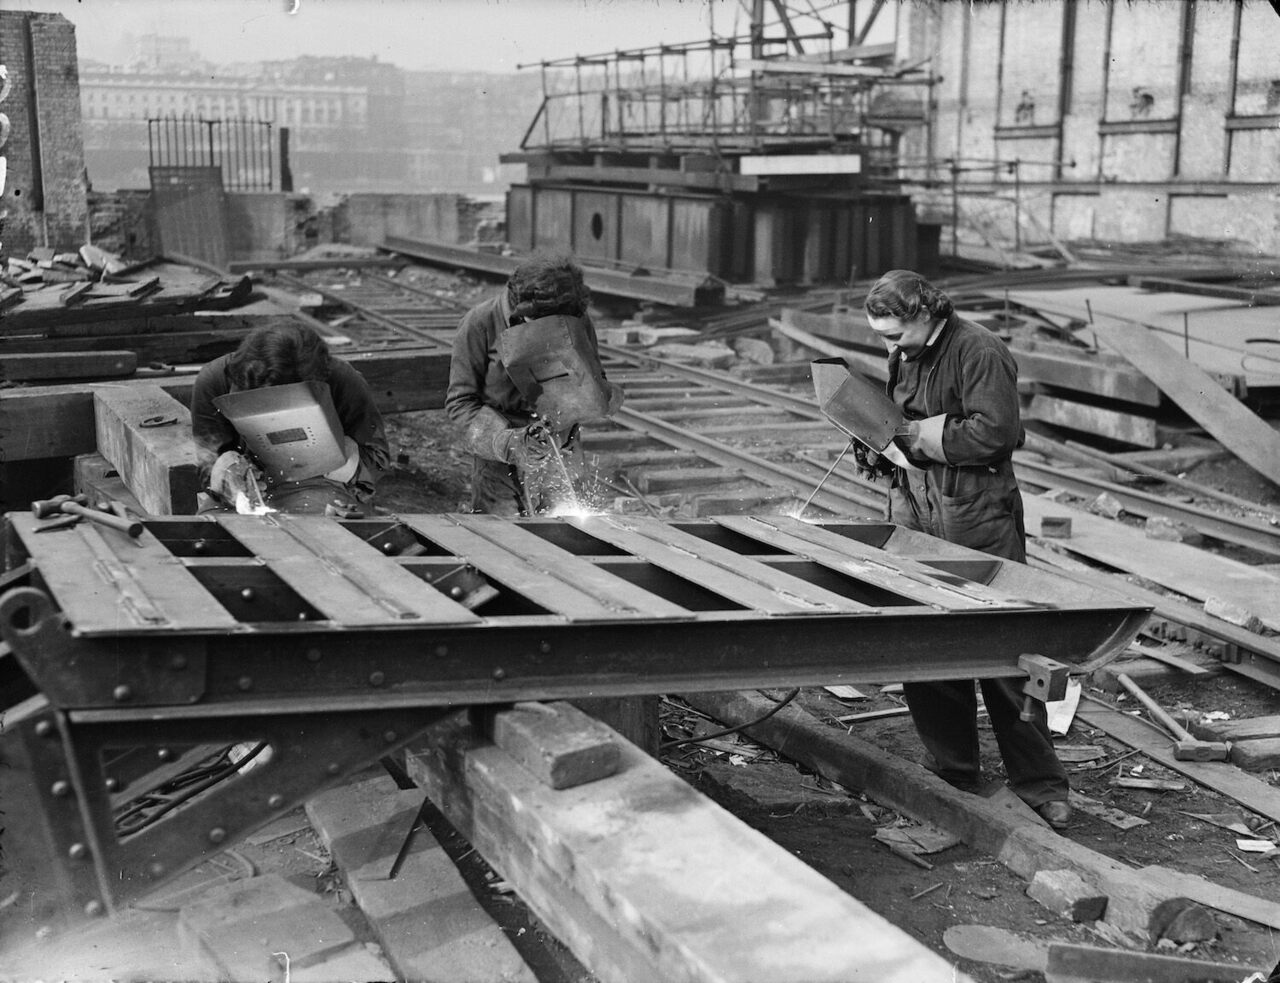 """A photo from The Daily Herald, with the original caption """"Girl acetylene welders were at their job as usual today, cutting the girders of the temporary Waterloo Bridge, which is being dismantled."""""""